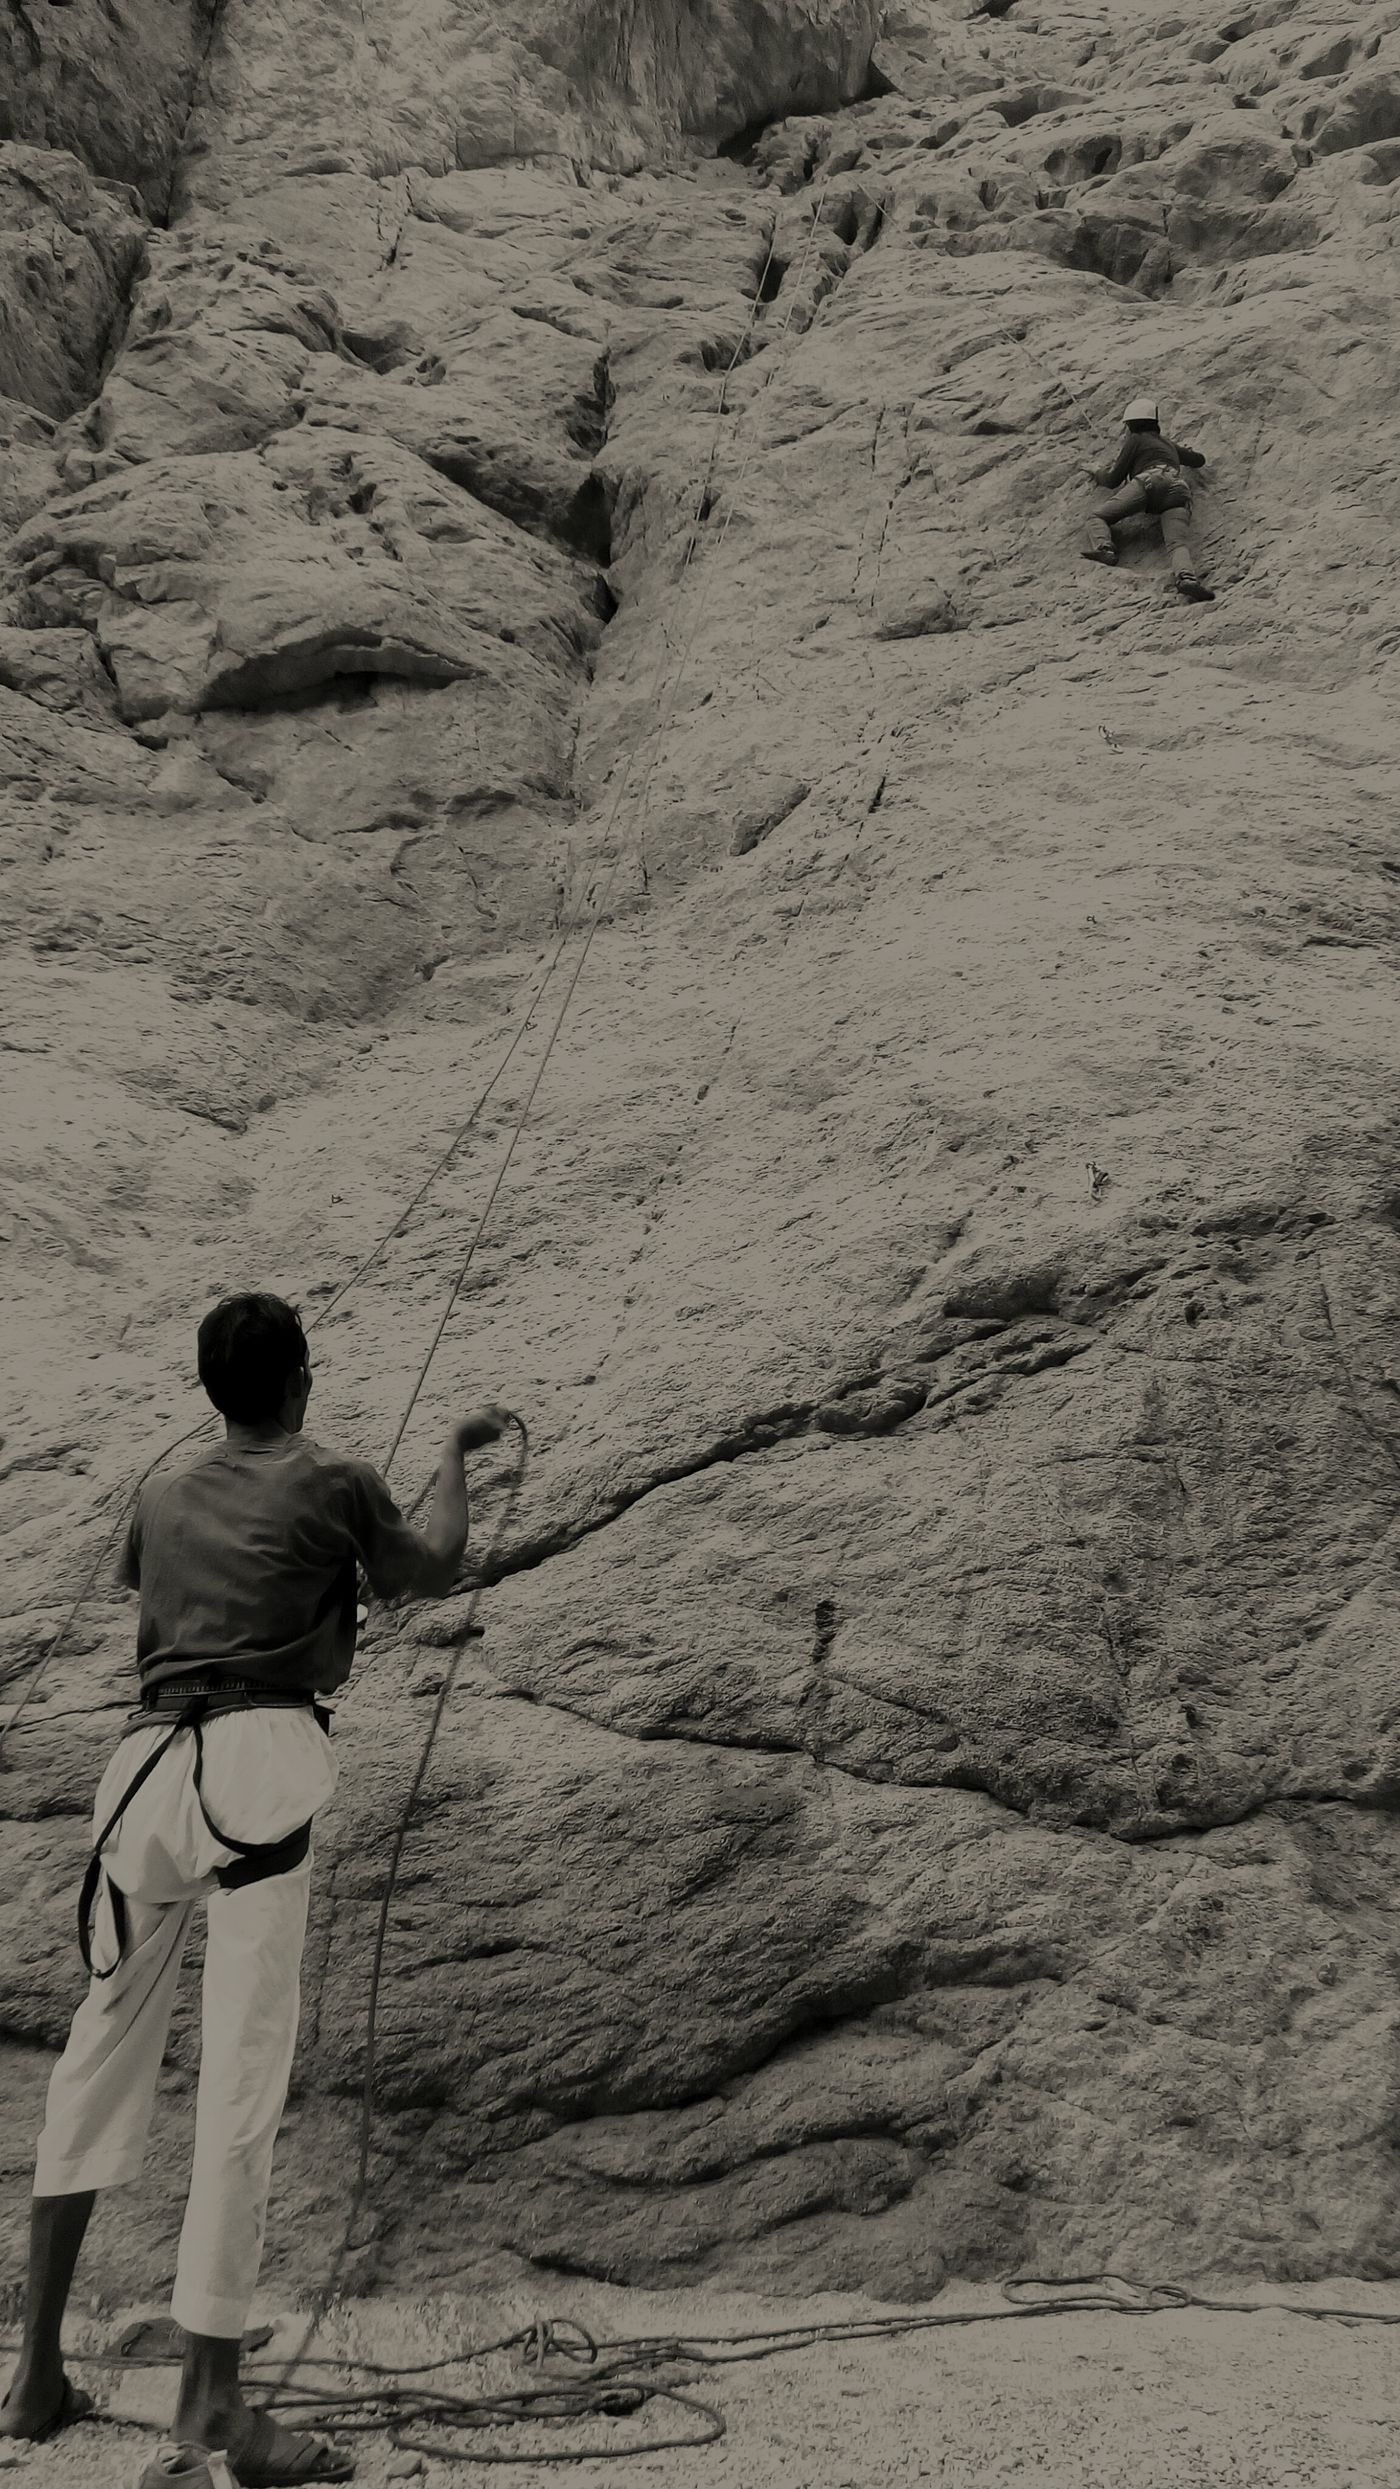 Climbing Hiking Hikingadventures Hiking Day Hiking Adventures Hike Blackandwhite Blanche Et Noir One Person Men Young Adult Standing Real People Rear View Egyptian Sinaaa Love Youu 😍😍 Dahab Dahab Red Sea Yeswecan Woman Who Inspire You Sunlight Lifestyles Casual Clothing Day Full Length First Eyeem Photo